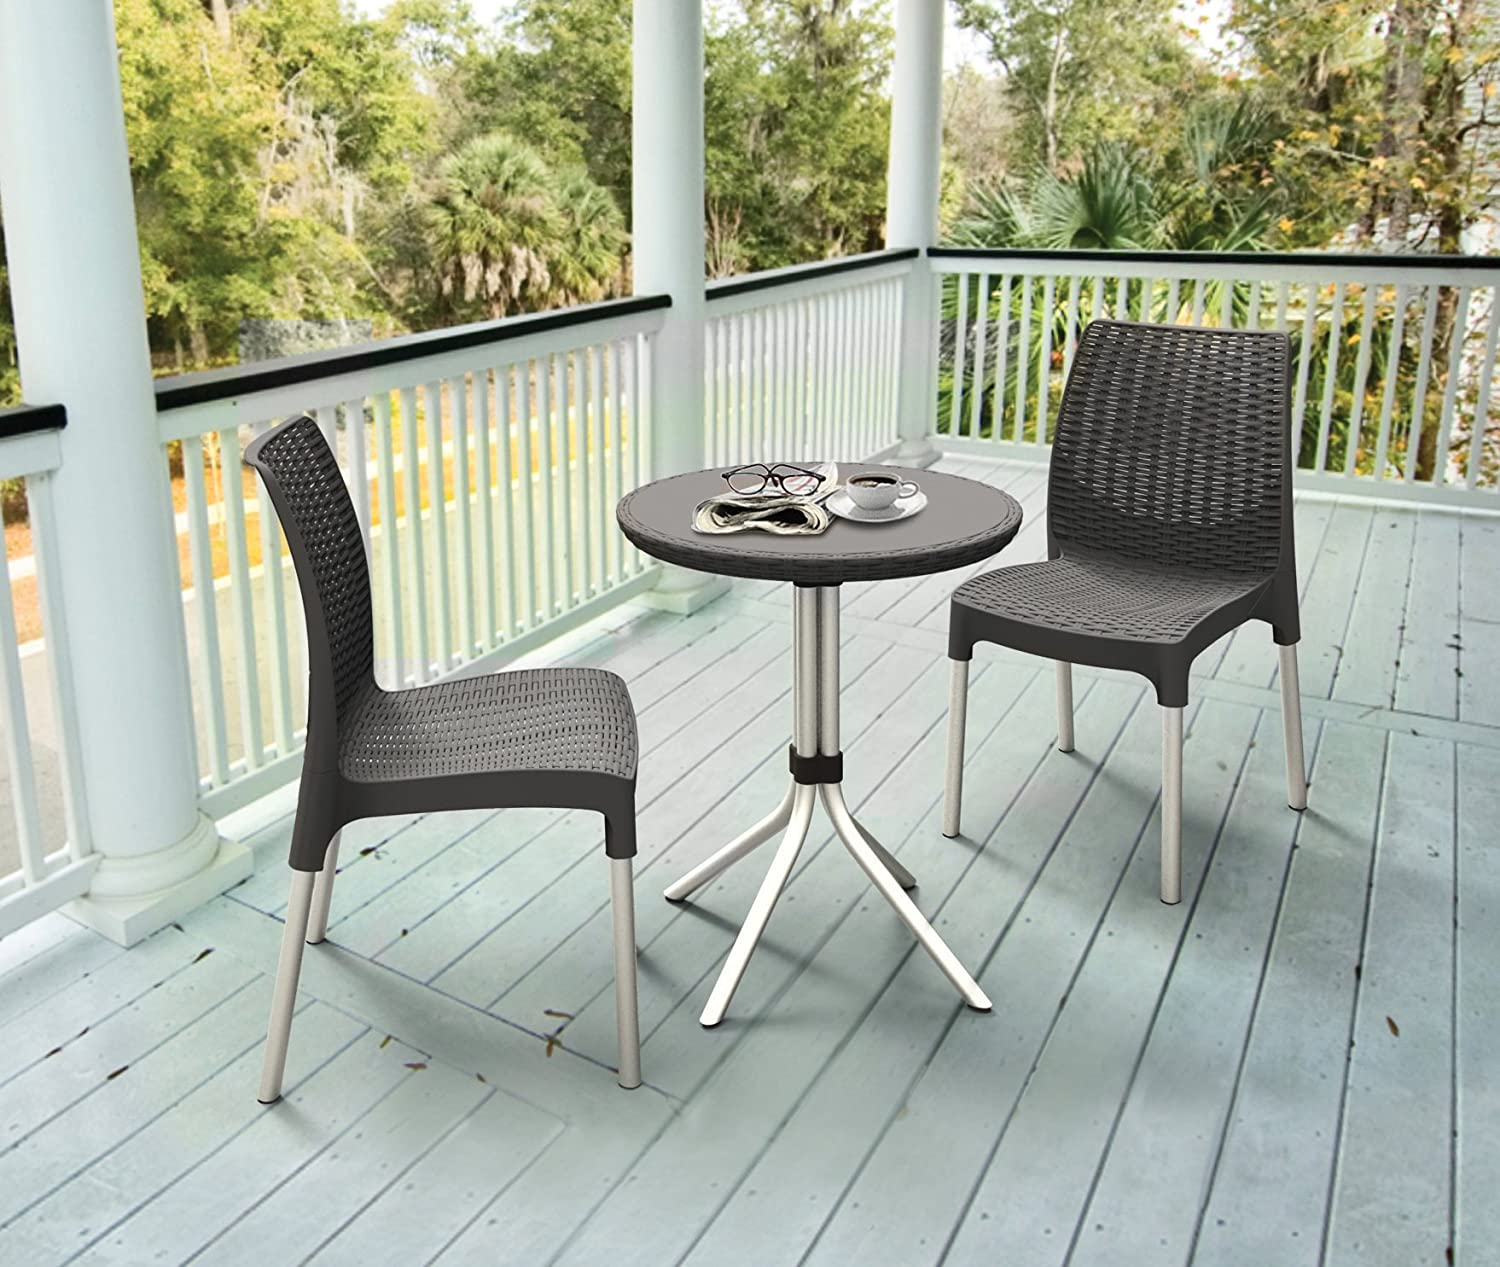 amazoncom keter chelsea 3 piece resin outdoor patio furniture dining bistro set with patio table and chairs charcoal patio lawn garden